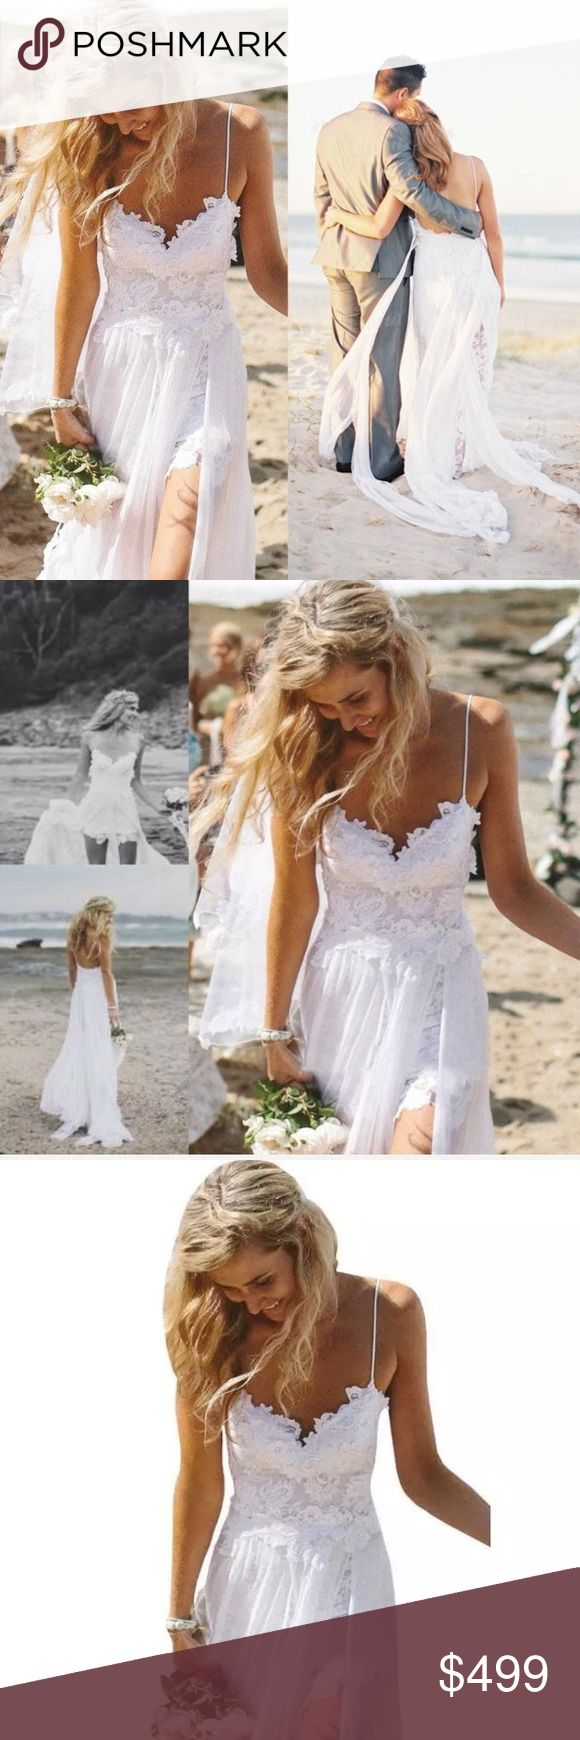 GET MARRIED🅾🆒 Wedding Dress WHITNEY ALLAN Lace White Dress. WEDDING DRESS.  SPECIALTY WEDDING , beach wedding church wedding vows engagement bride ring flower girl bridal shower wife wifey special bridal gown sweetheart design with embroidery Boutique Dresses